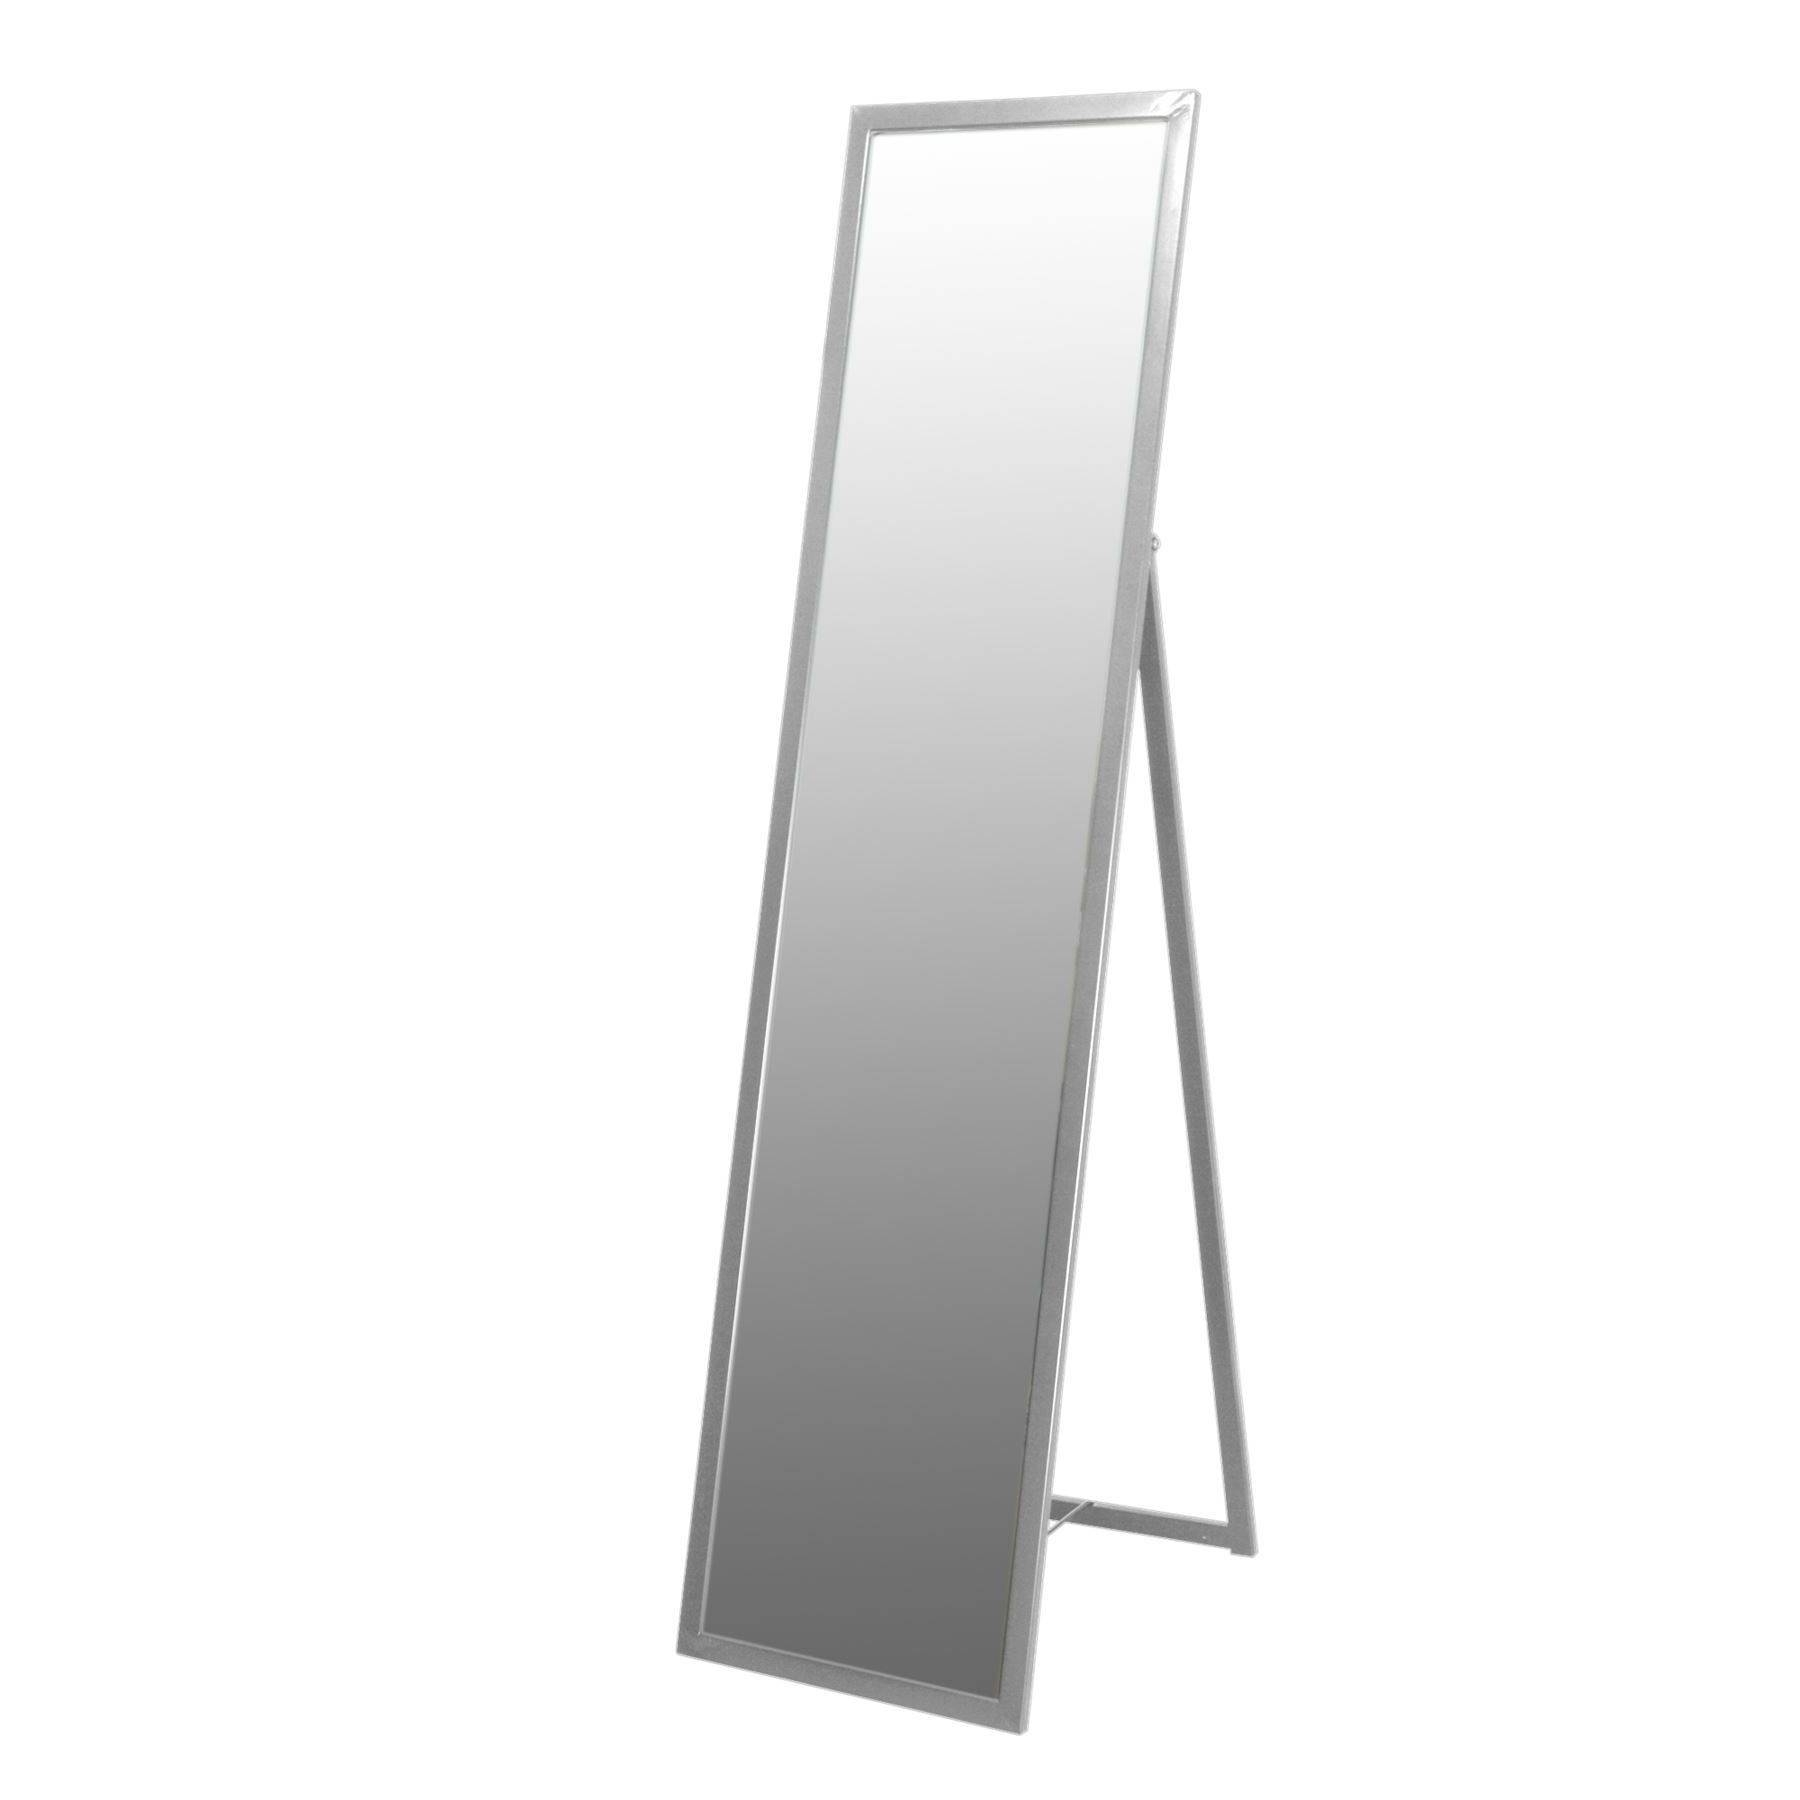 Shabby Chic Ornate Silver Free Standing Full Length Wall Mirror with Free Standing Shabby Chic Mirrors (Image 15 of 15)